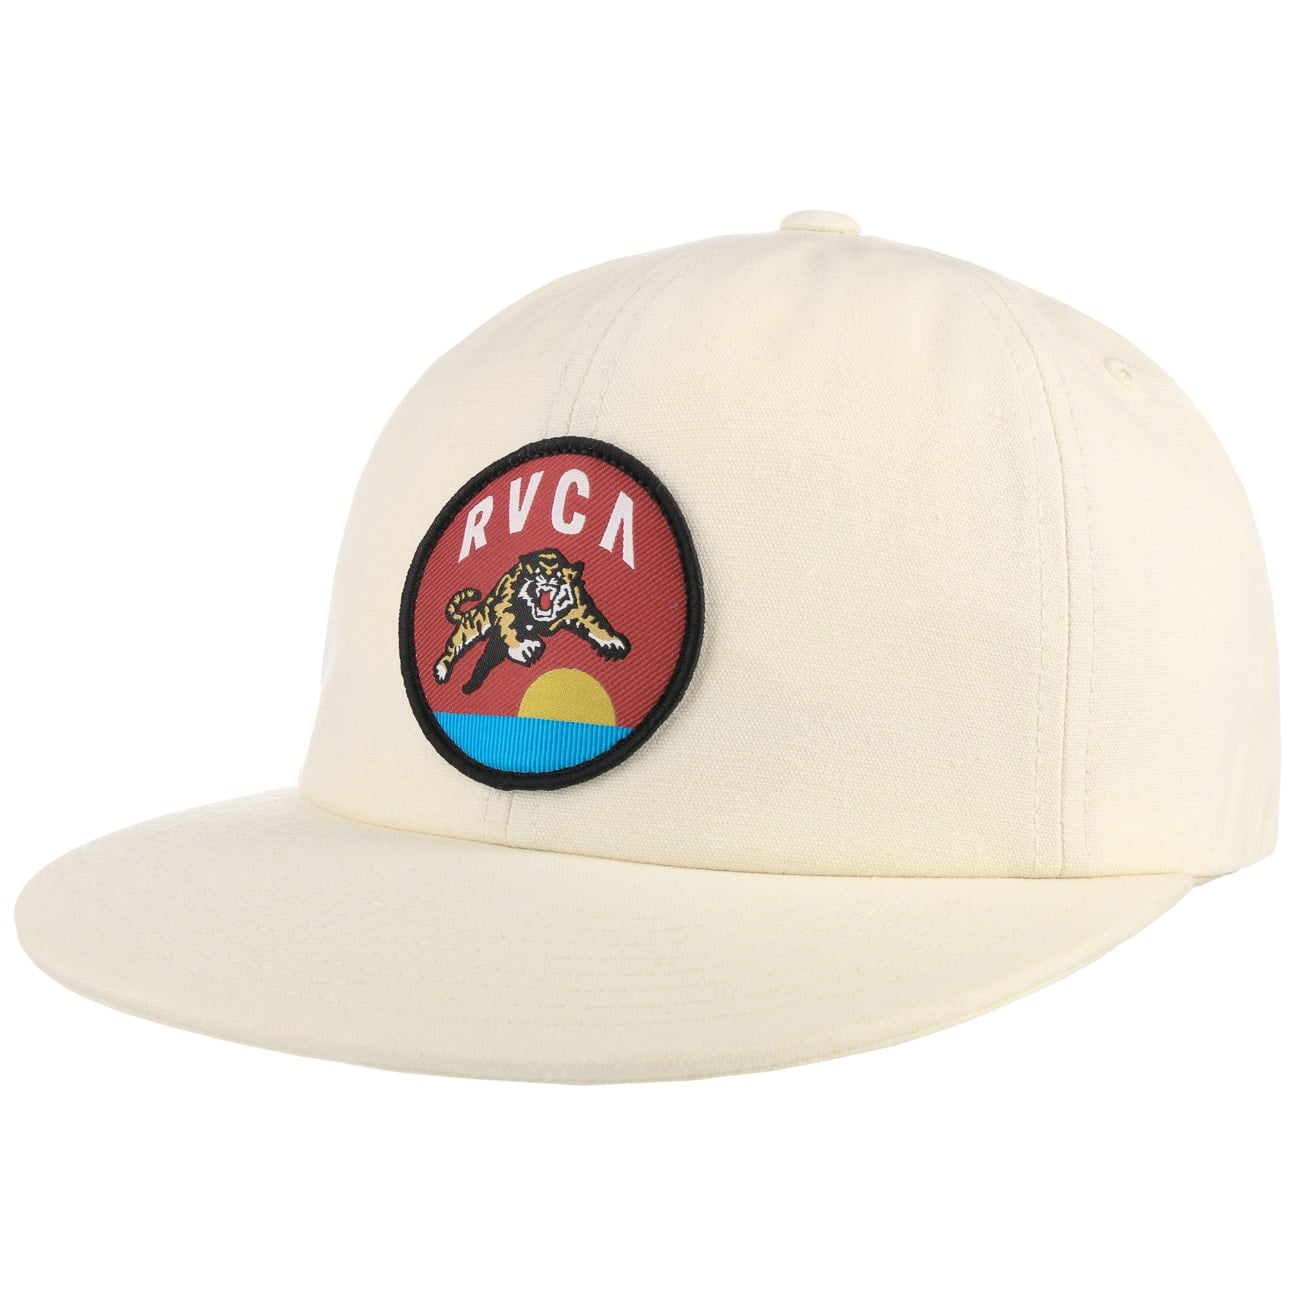 Casquette Snapback Jumping Tiger by RVCA  casquette snapback